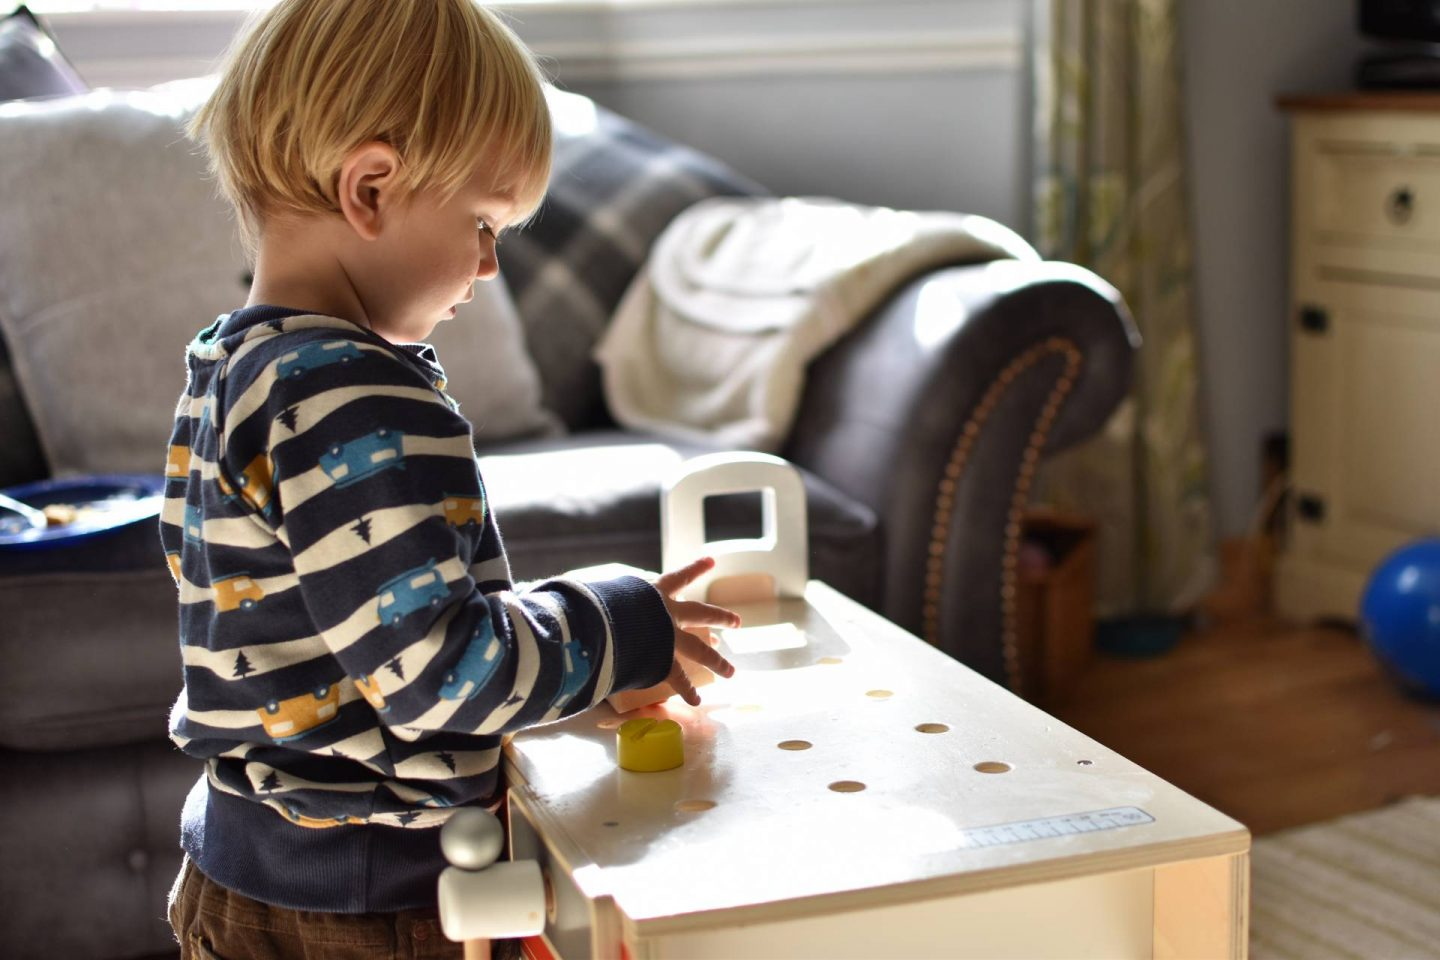 If you're looking for a sturdy gift which can withstand a boisterous toddler then this wooden workbench from the Wooden Toy Shack is perfect